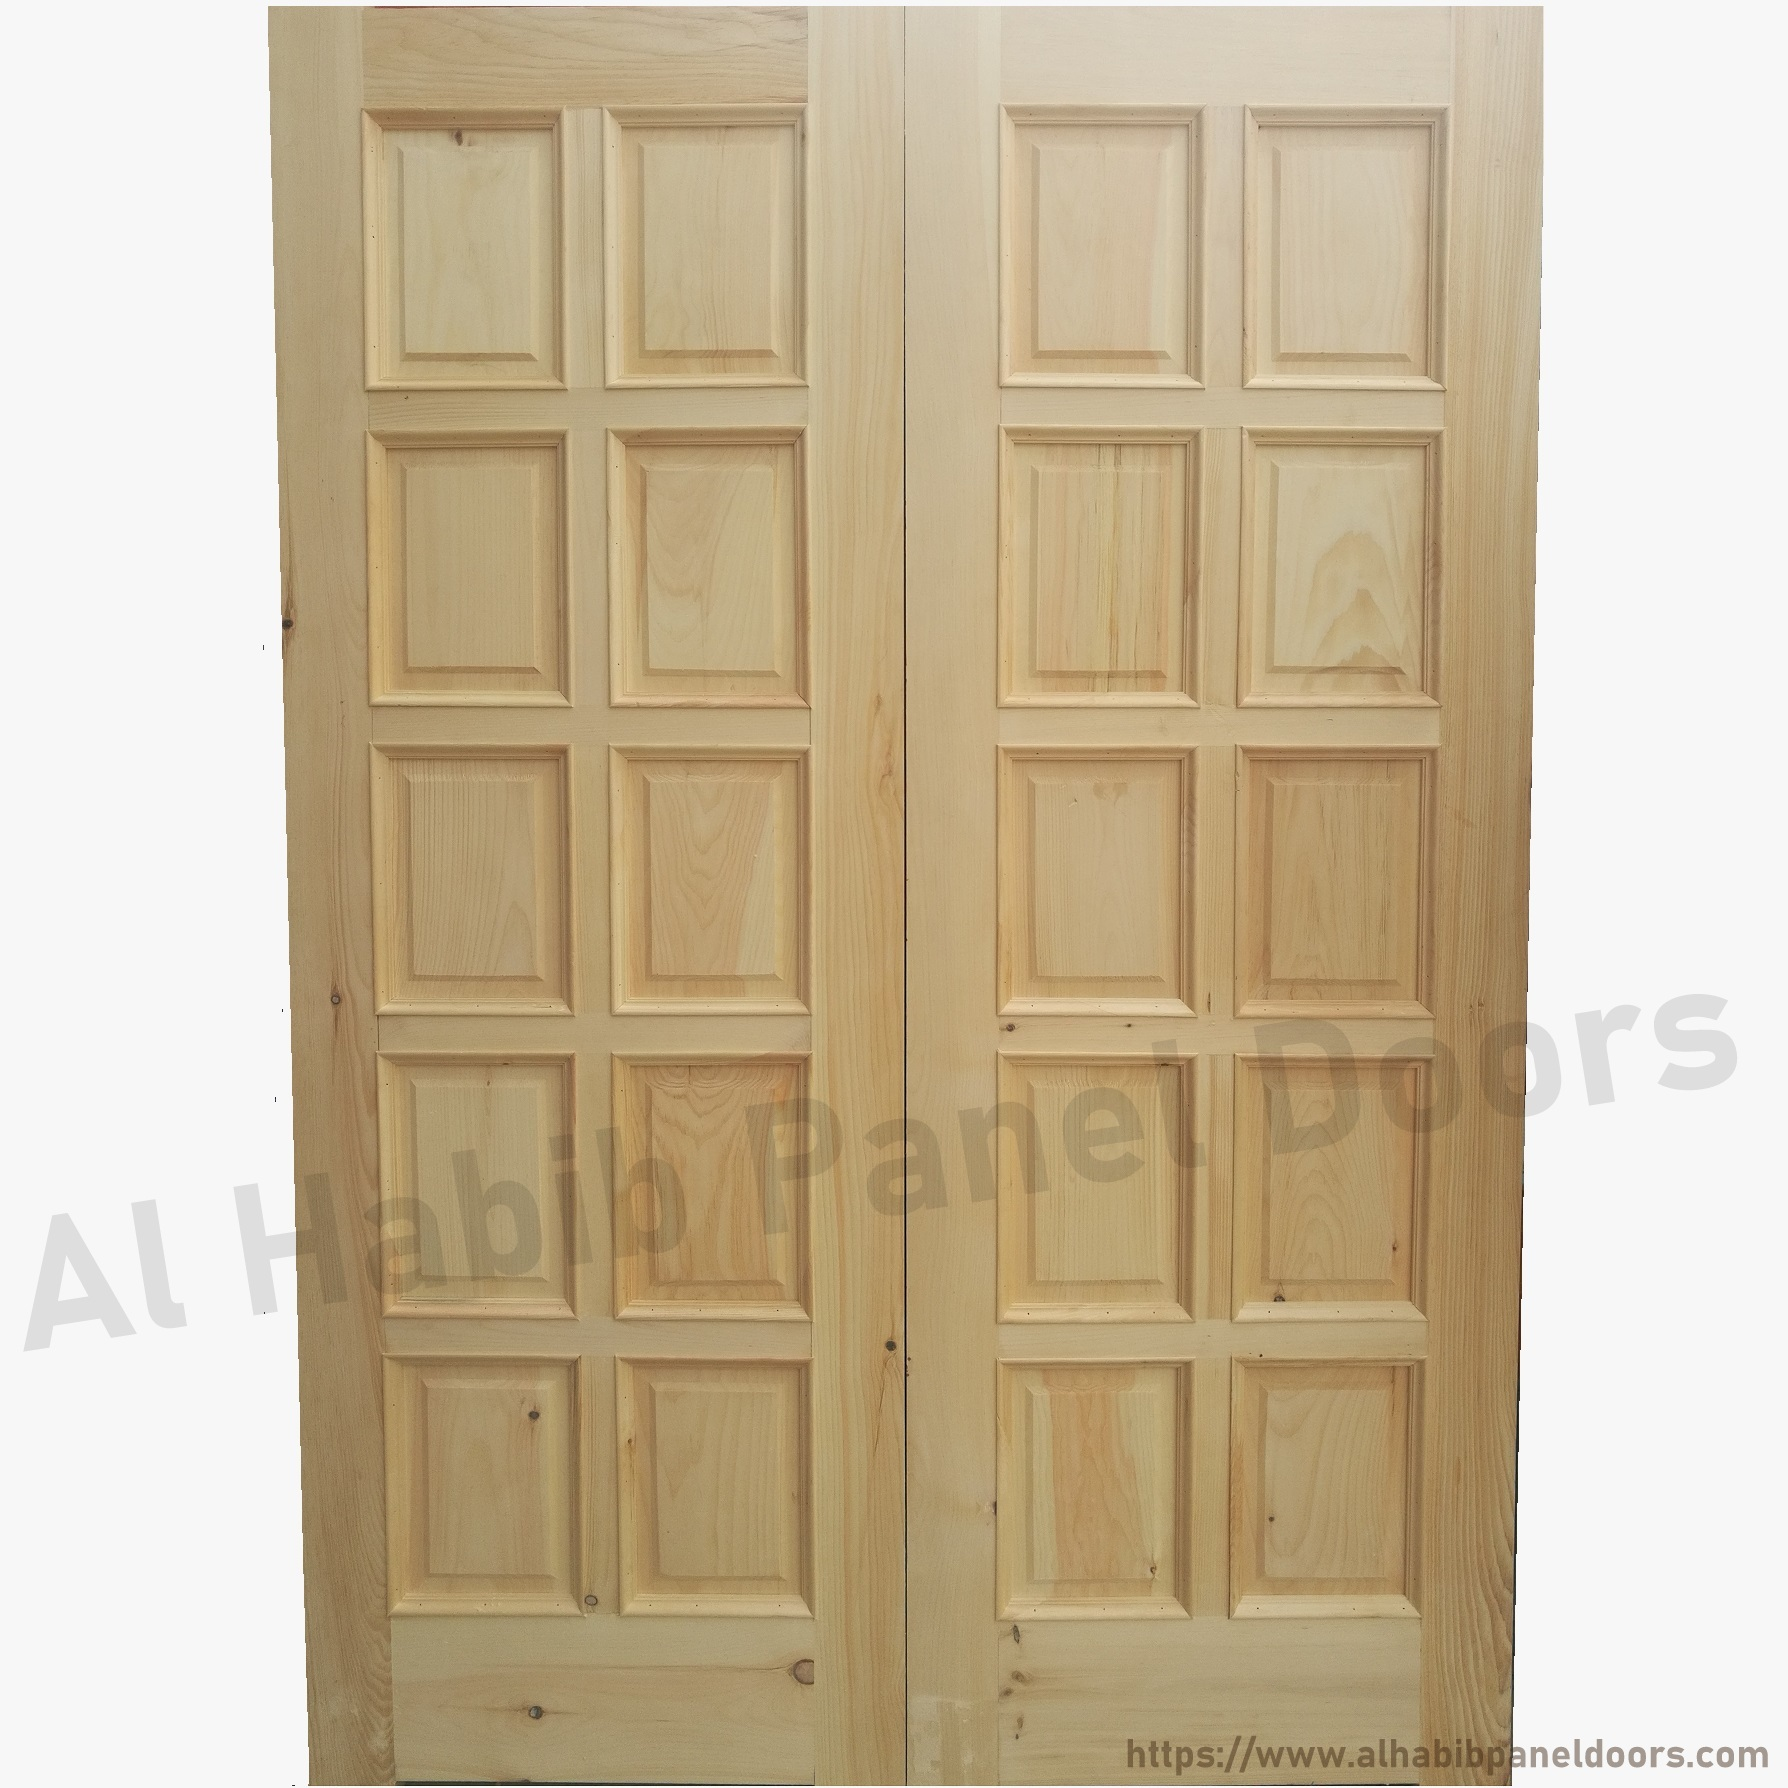 Diyar solid wood main double door hpd412 main doors al for Main door design of wood